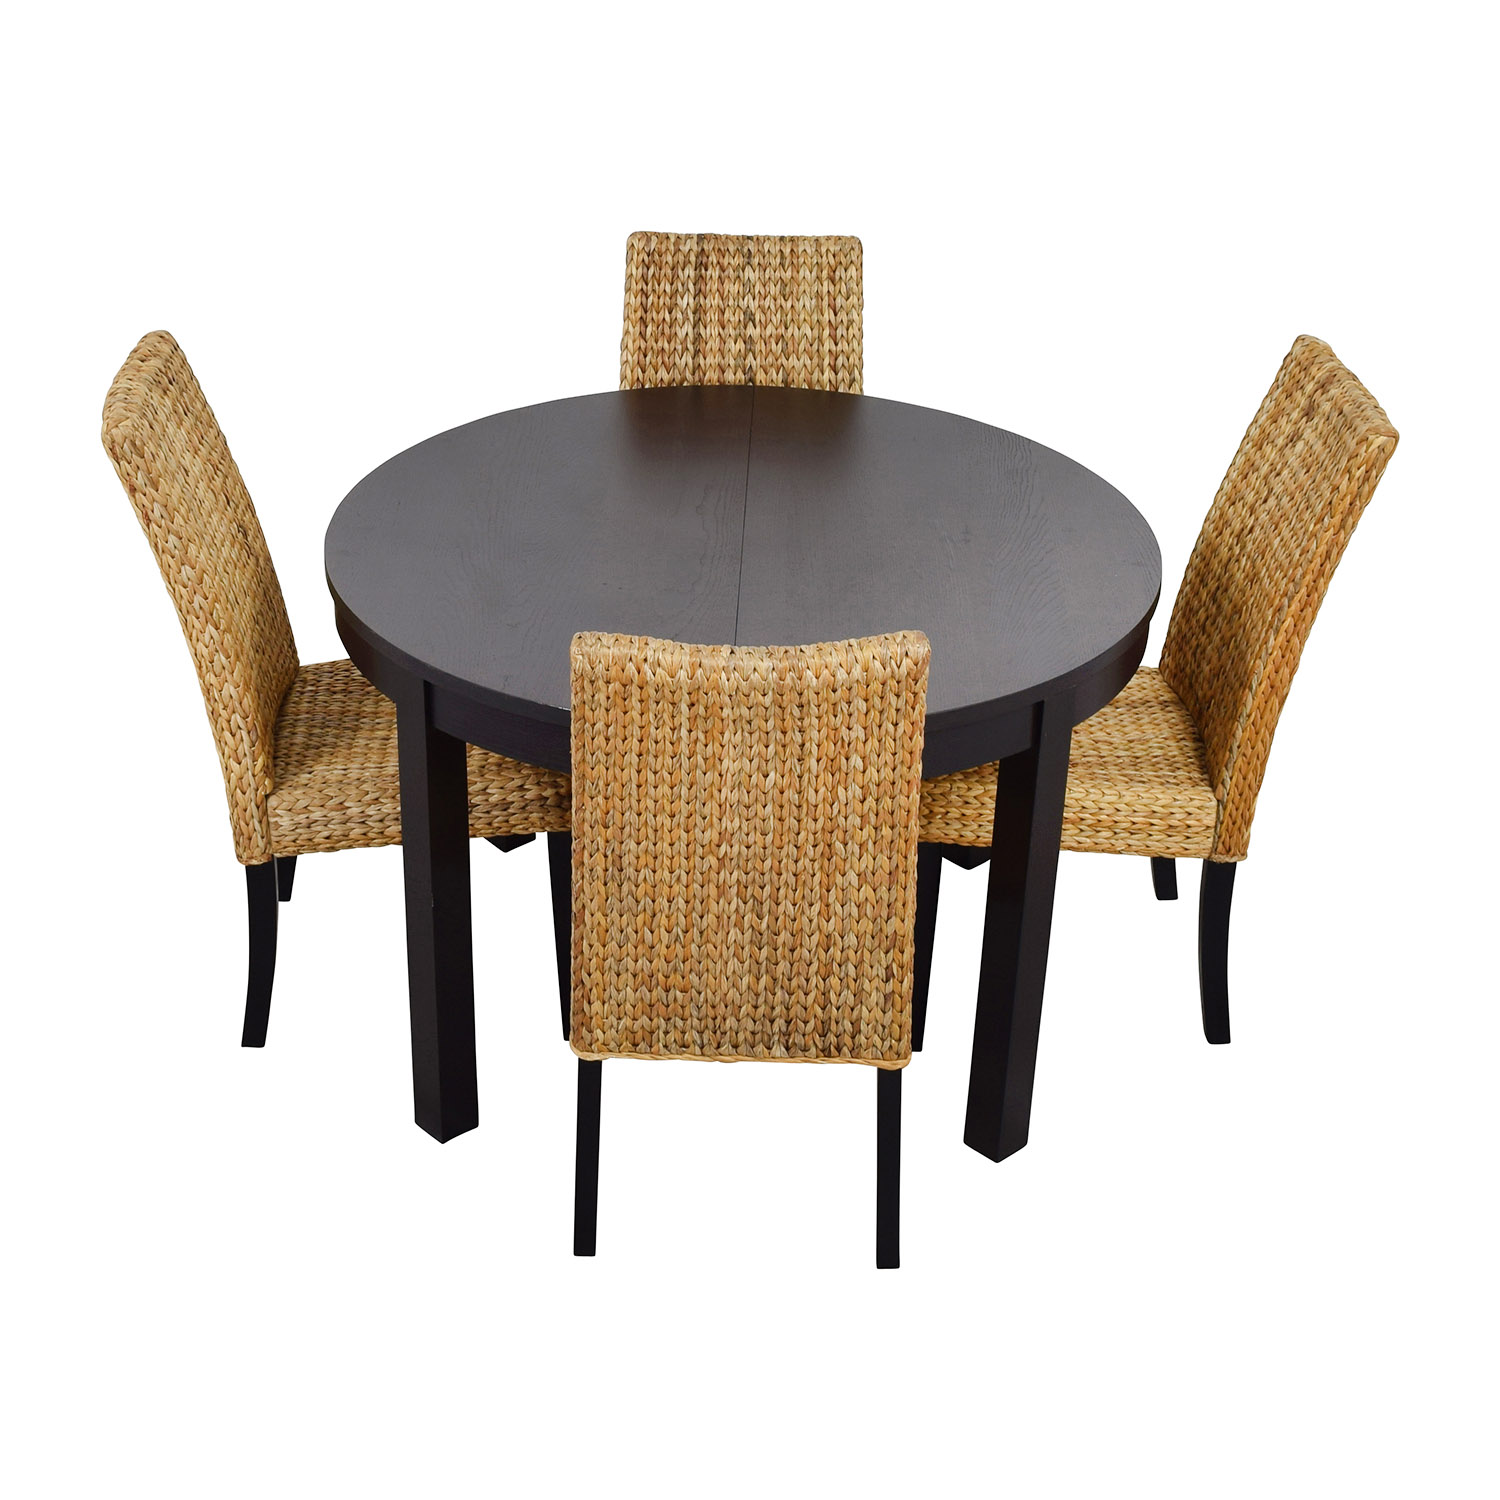 66 Off Macys Ikea Round Black Dining Table Set With Four